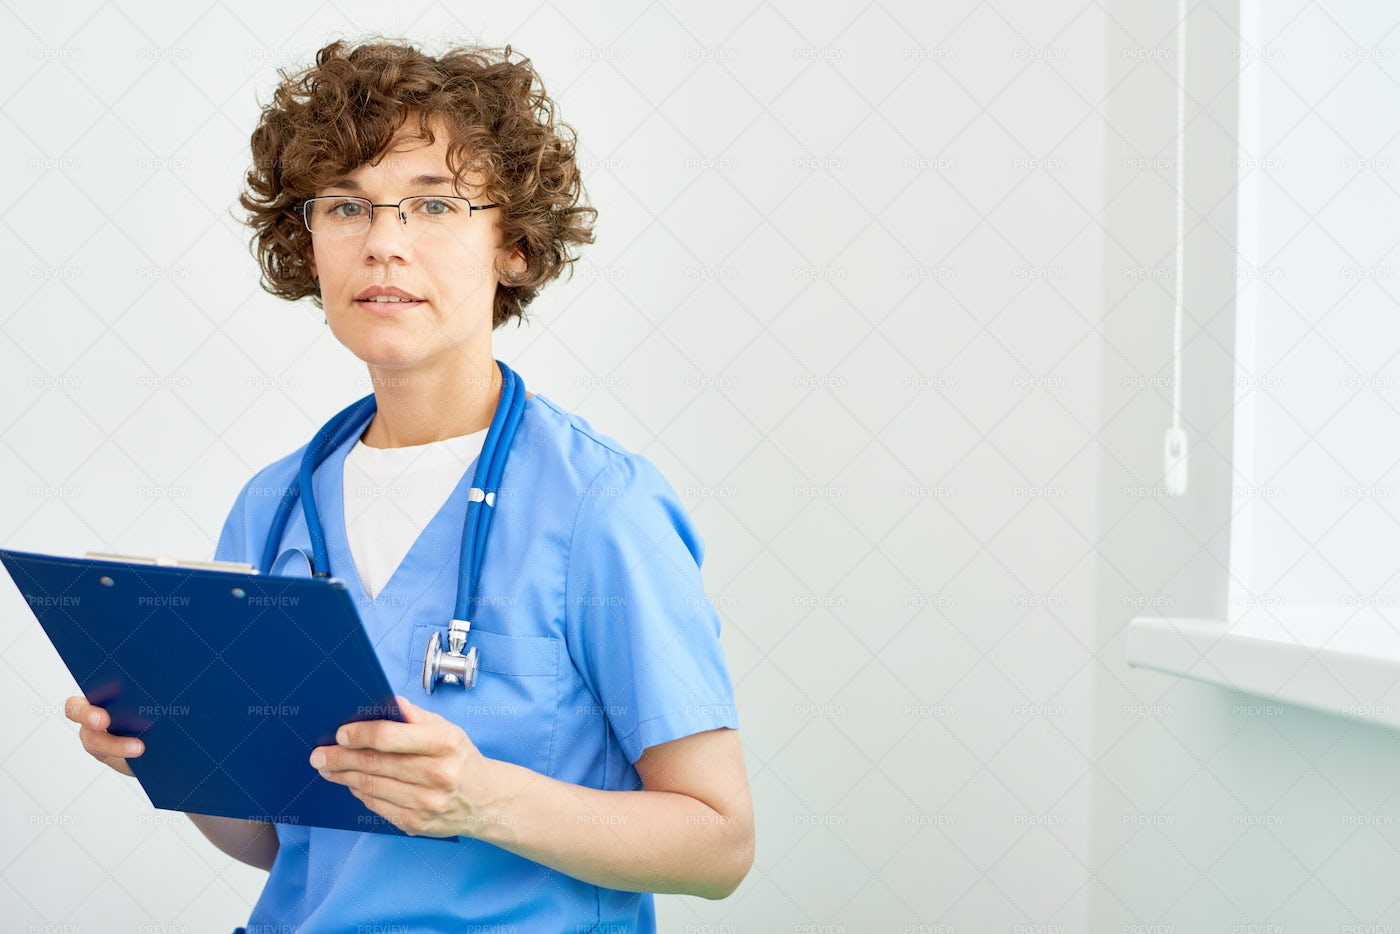 Young Intern Holding Clipboard: Stock Photos